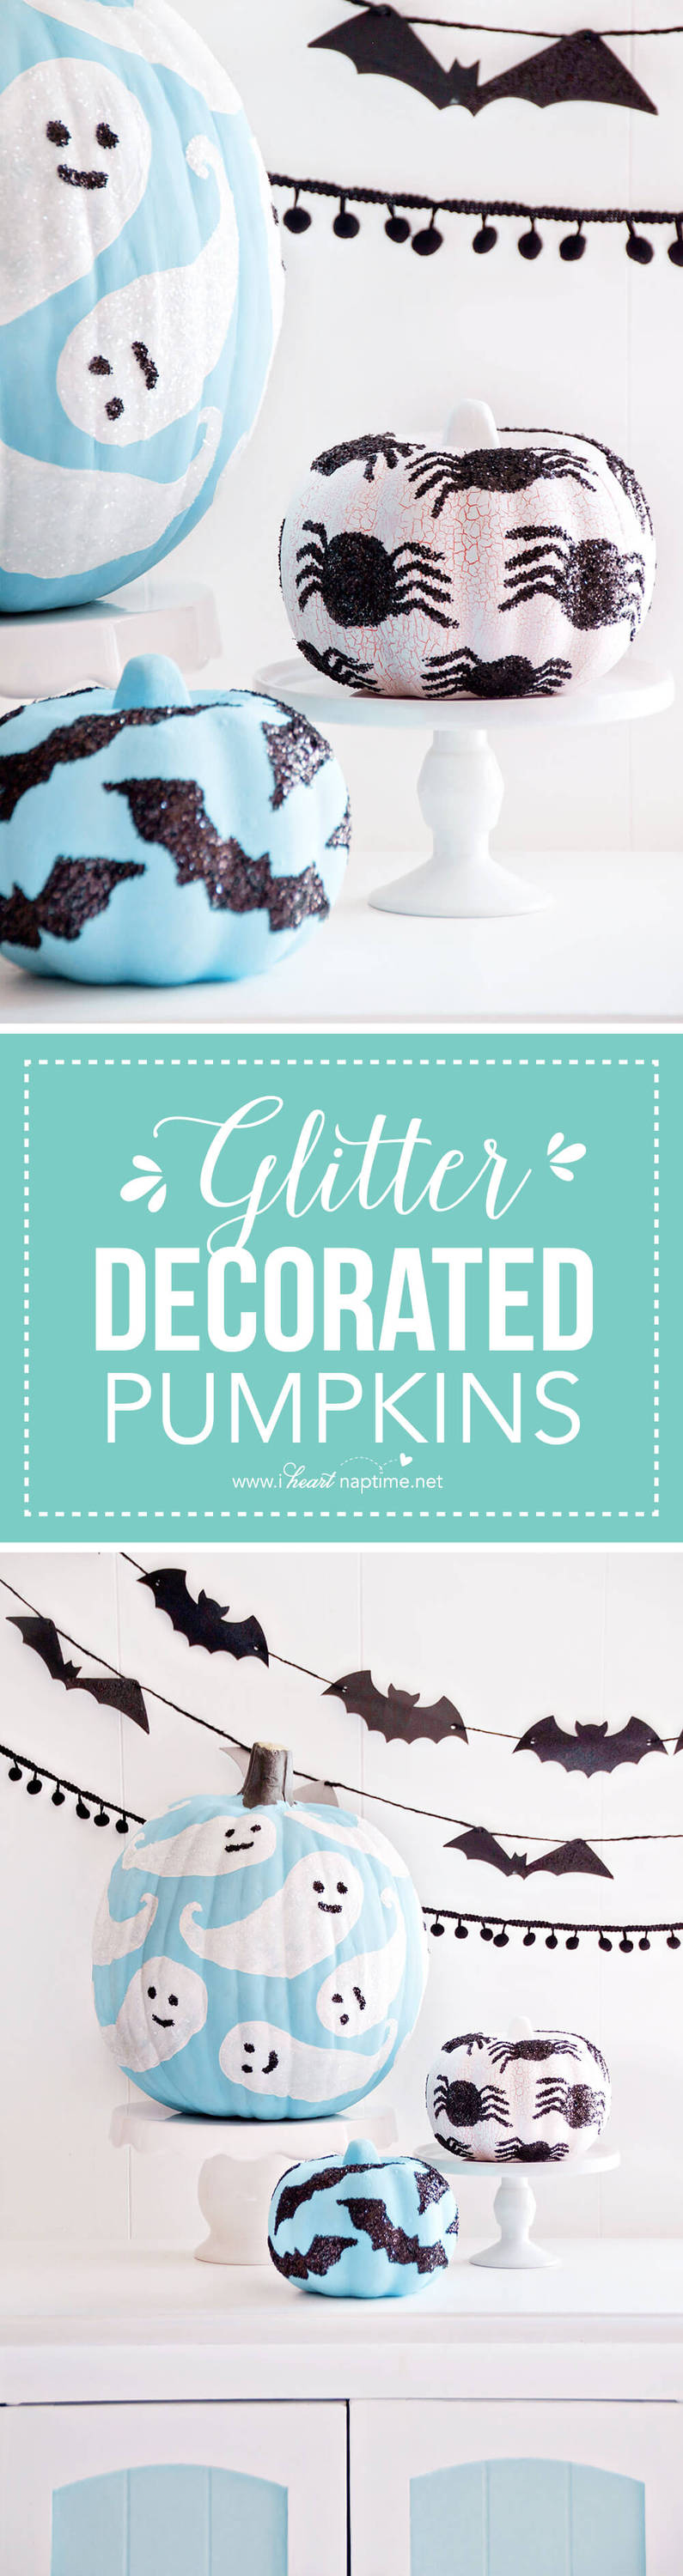 Glitter Decorated Pumpkins ...add a sparkly touch to your Halloween decor this season with these fun, glittered pumpkins!